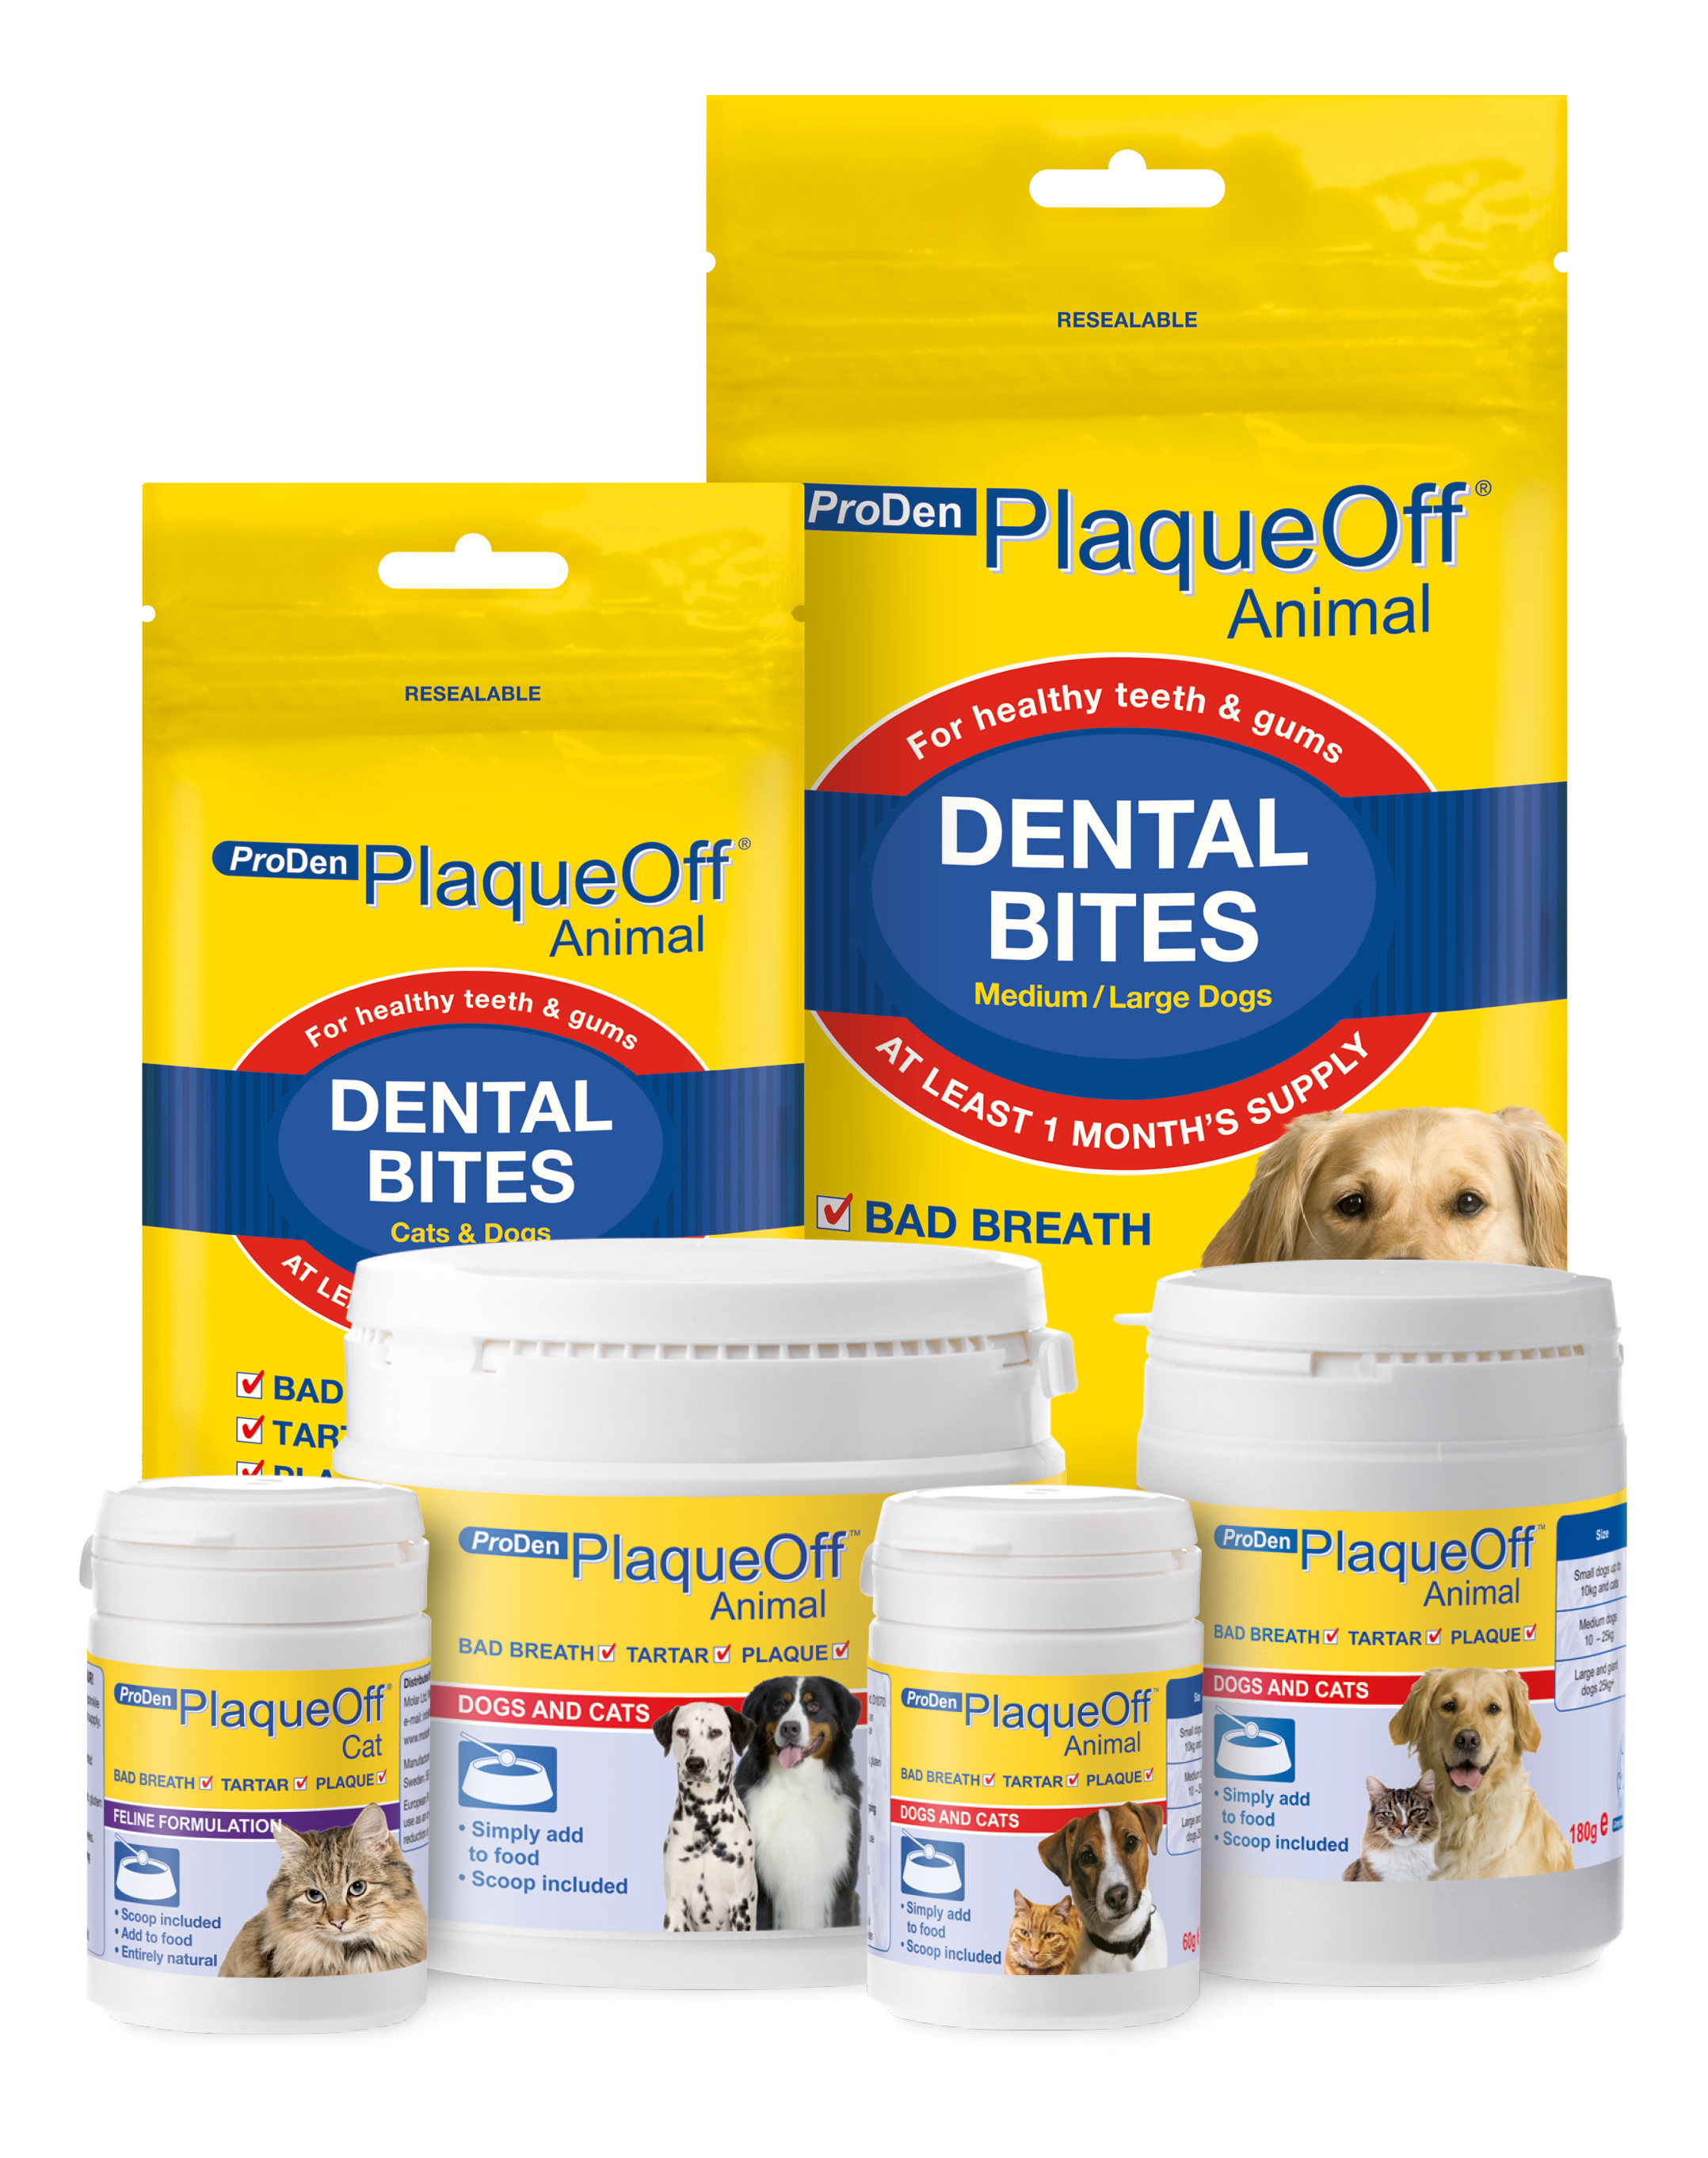 PlaqueOff Animal, a range of natural products to help with